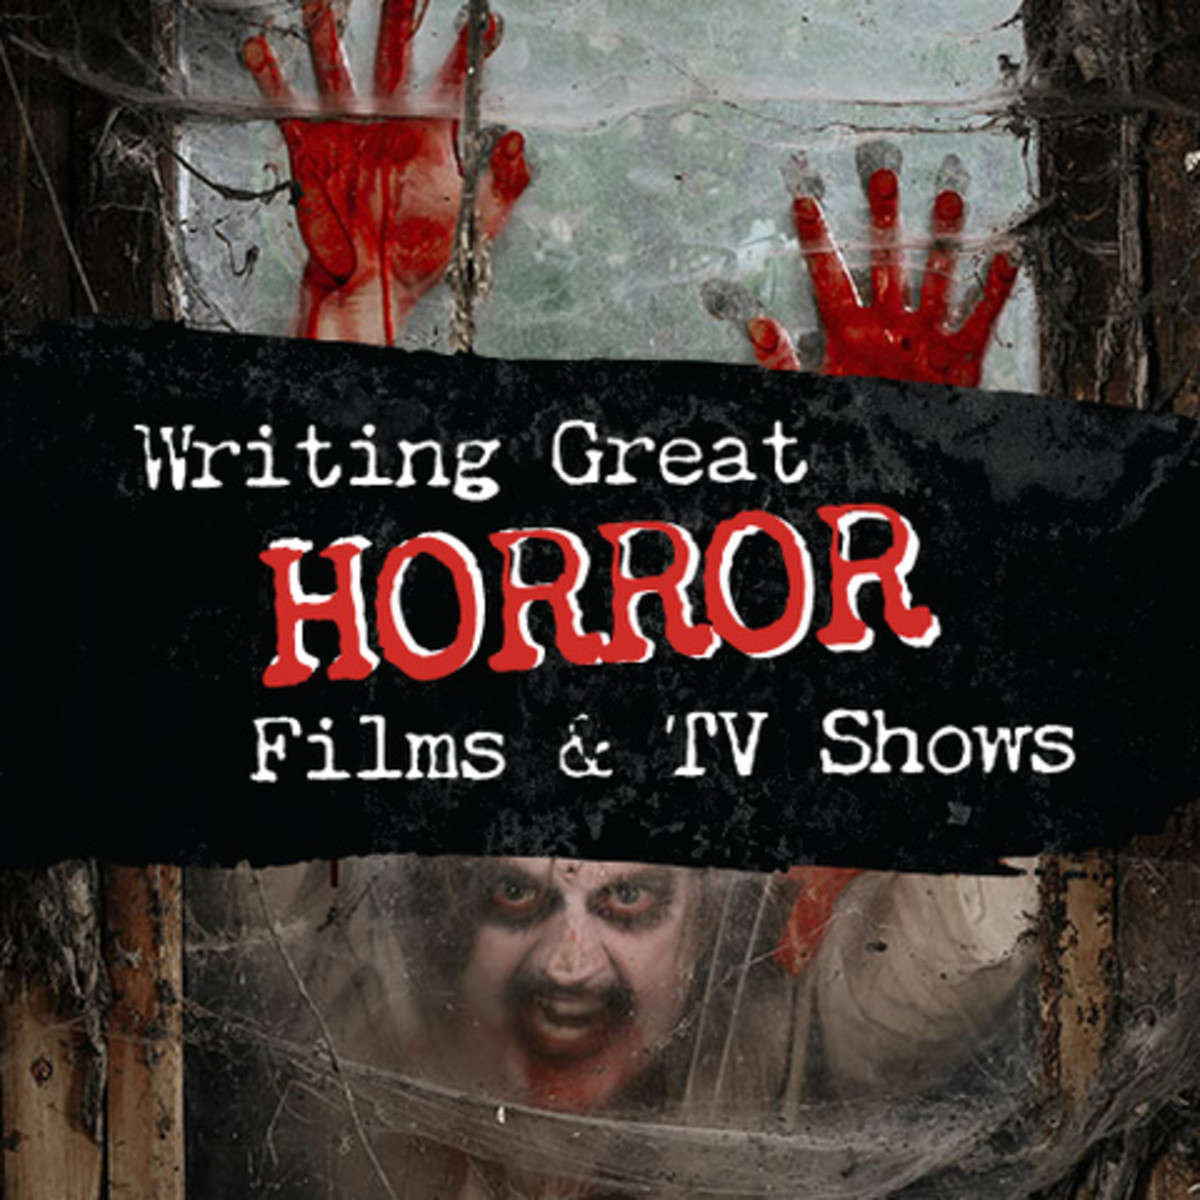 Screenwriter Glenn M. Benest, who worked alongside legendary horror writer Wes Craven, offers tips on writing horror films and TV shows.